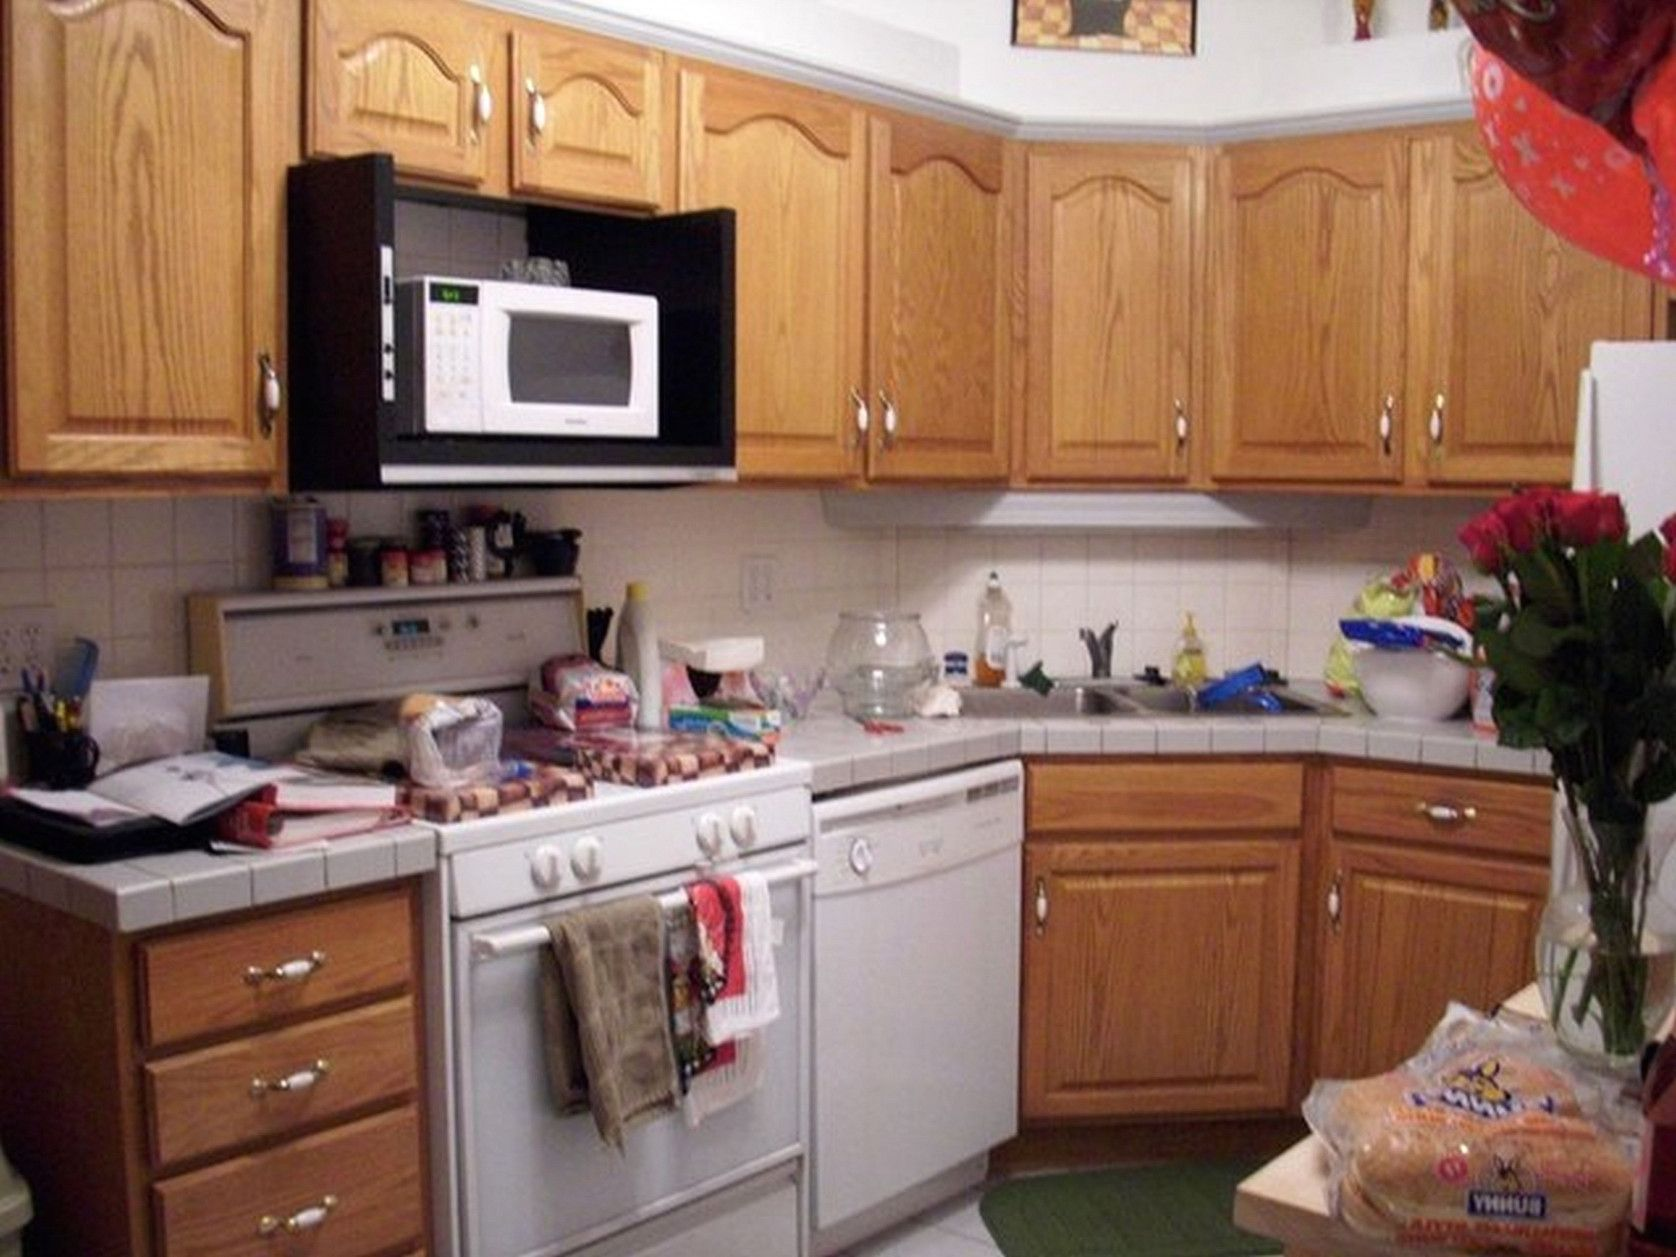 2018 used kitchen cabinets ny - kitchen cabinets countertops ideas